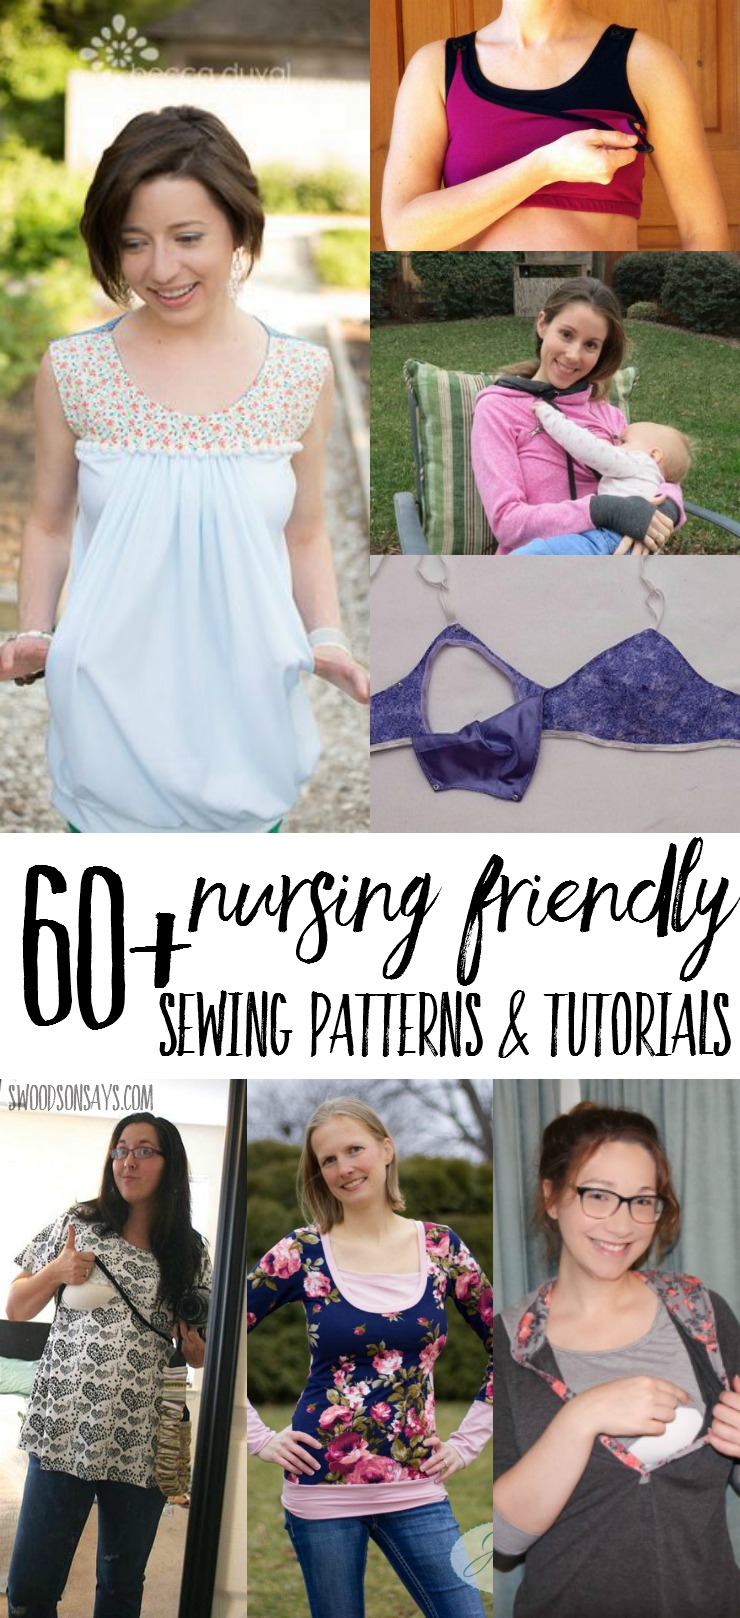 60+ nursing friendly sewing patterns - Swoodson Says